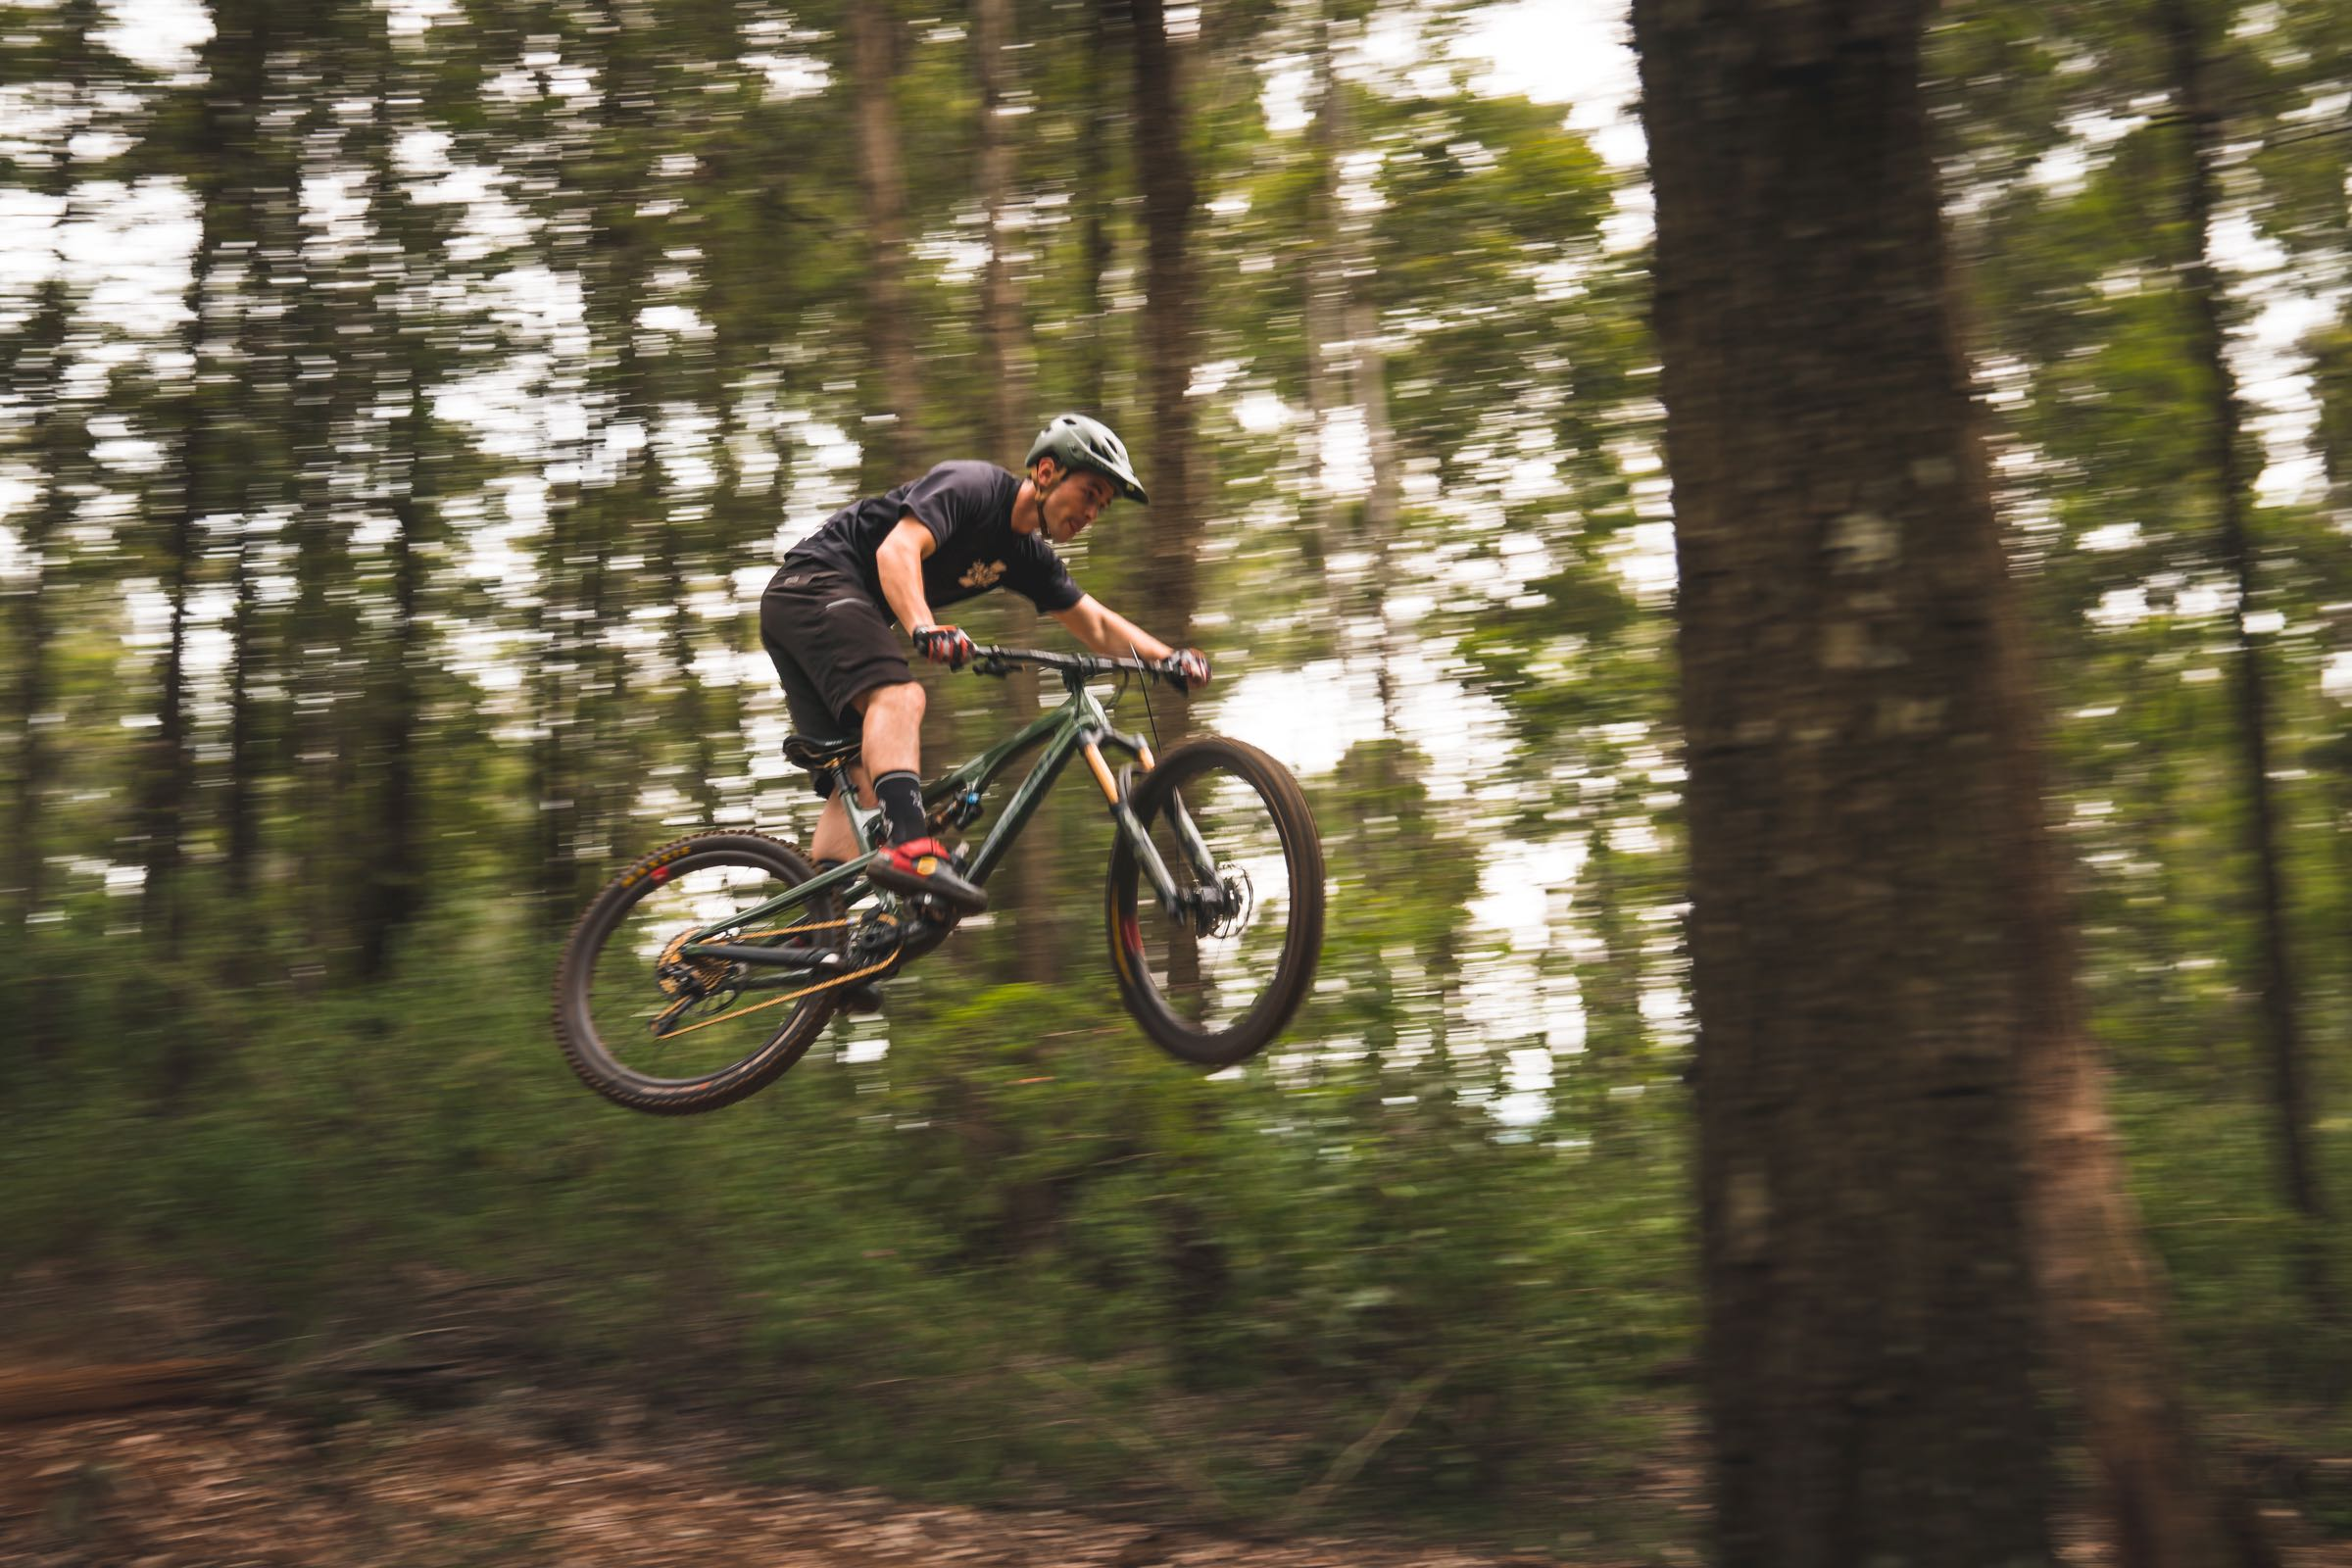 Enduro MTB rider Samm Bull riding in the KZN forests